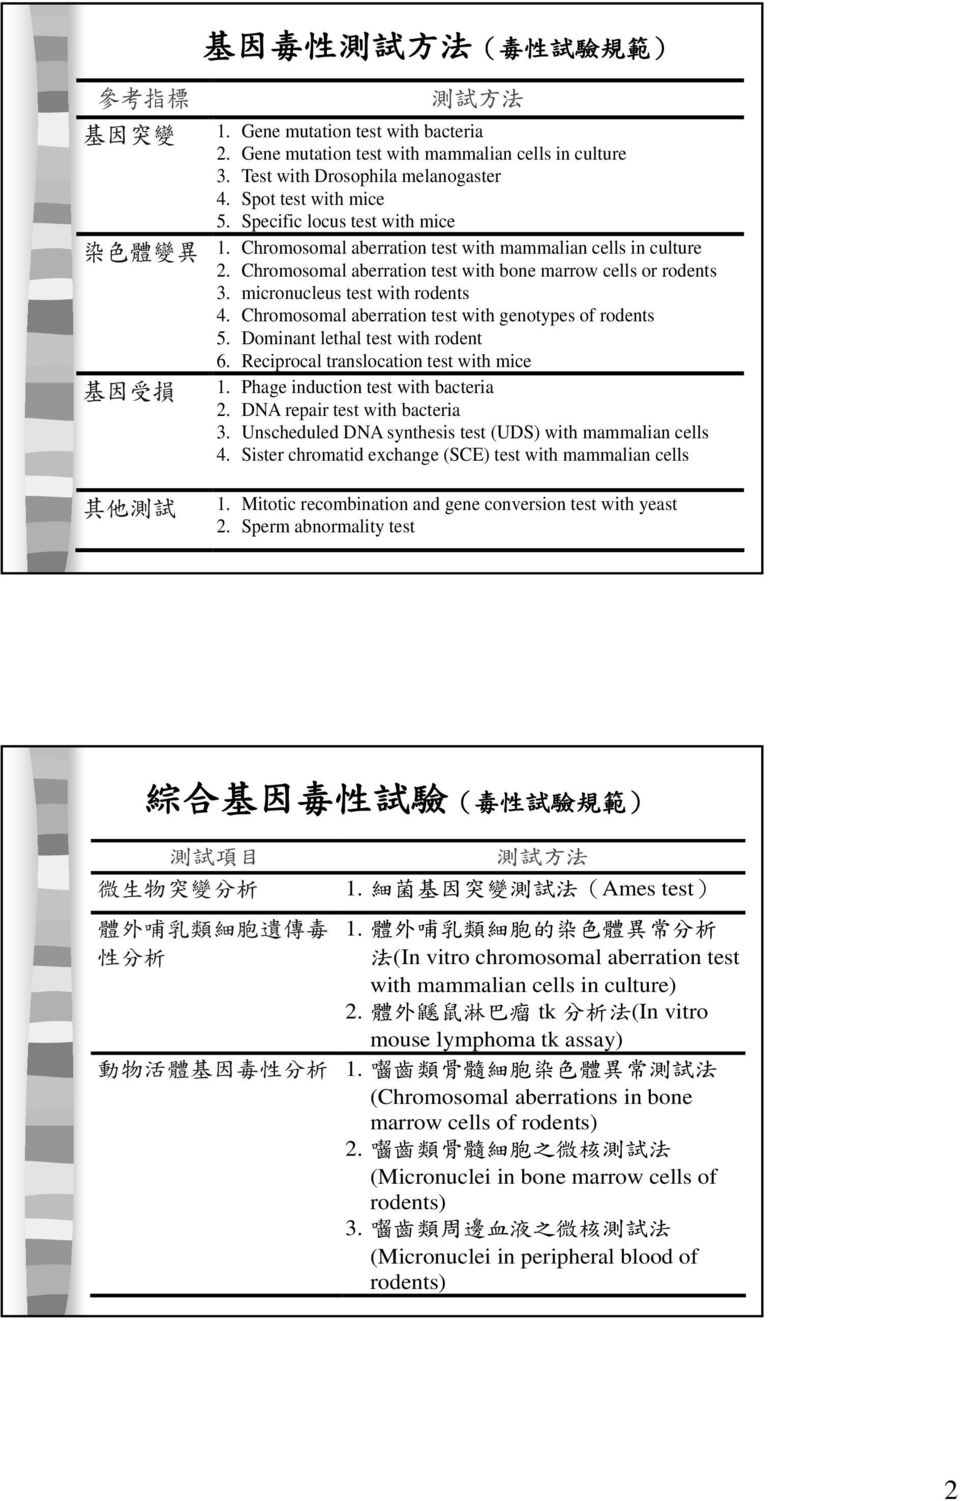 micronucleus test with rodents 4. Chromosomal aberration test with genotypes of rodents 5. Dominant lethal test with rodent 基 因 受 損 6. Reciprocal translocation test with mice 1.